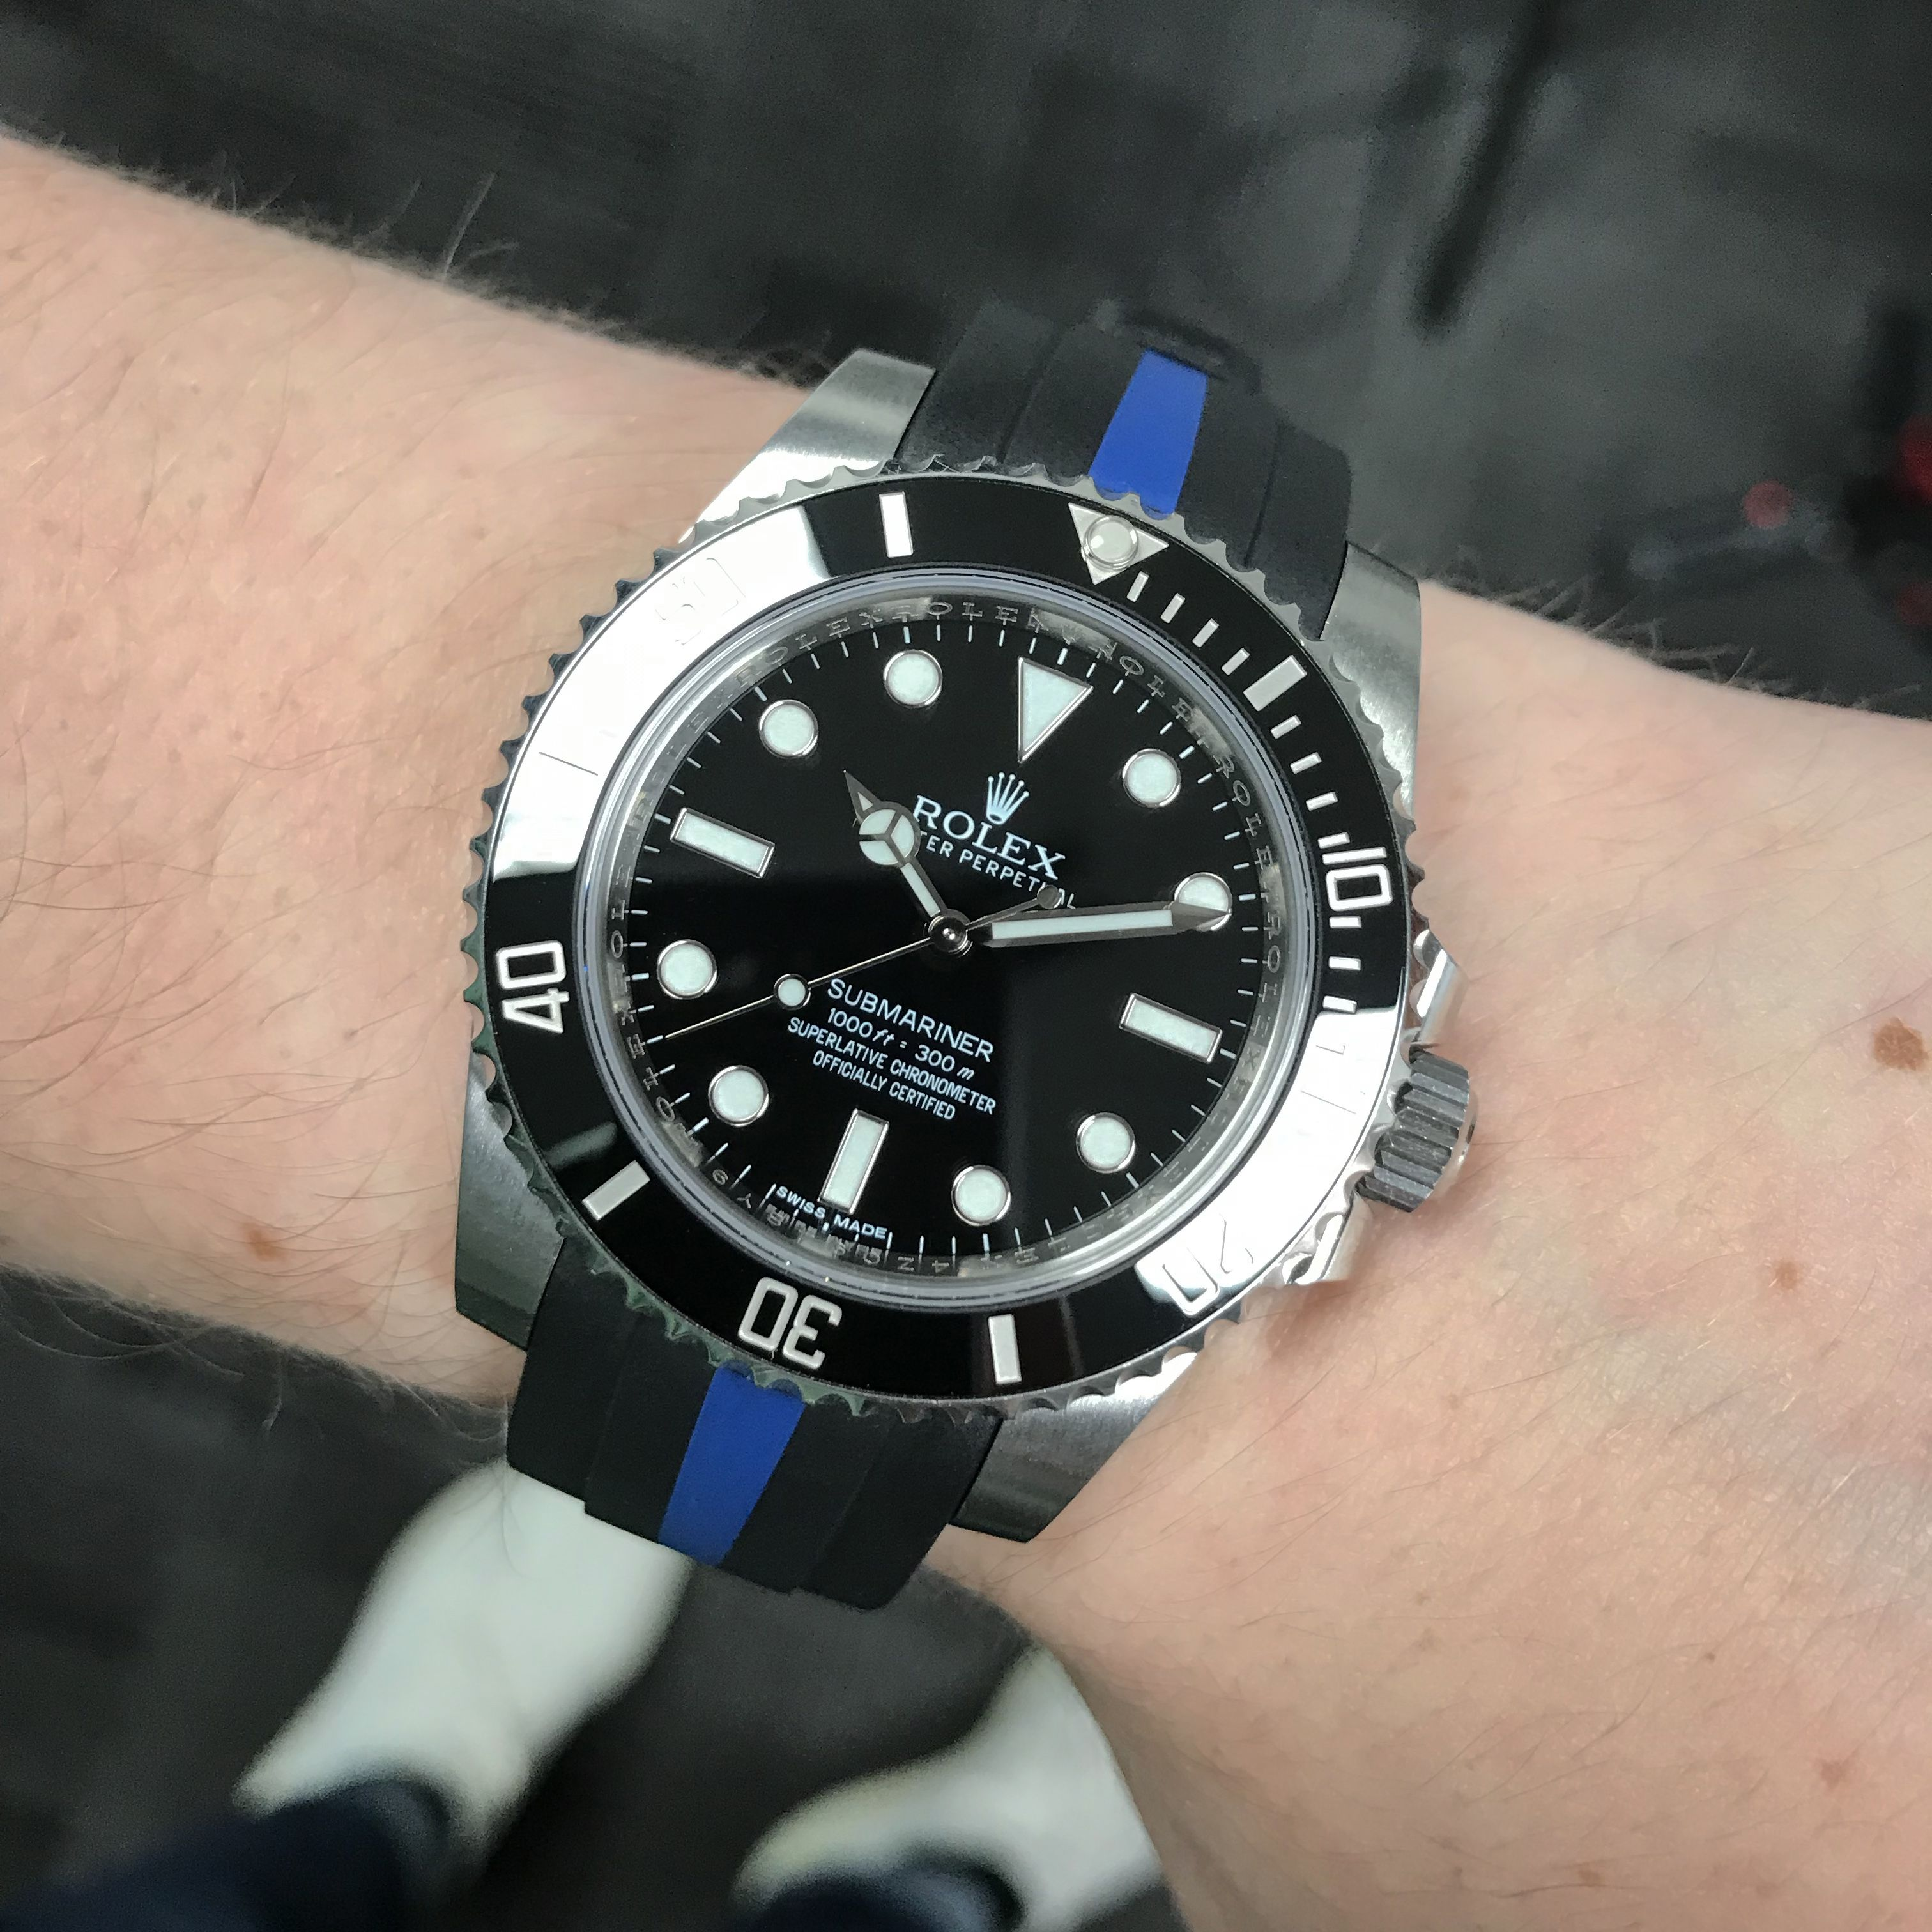 Rocking The Sub C Nd In The Office On The New Bi Color Rubber Strap And It S Sick Watchfam What Do You Want To See It Rolex Submariner Watch Strap Rolex